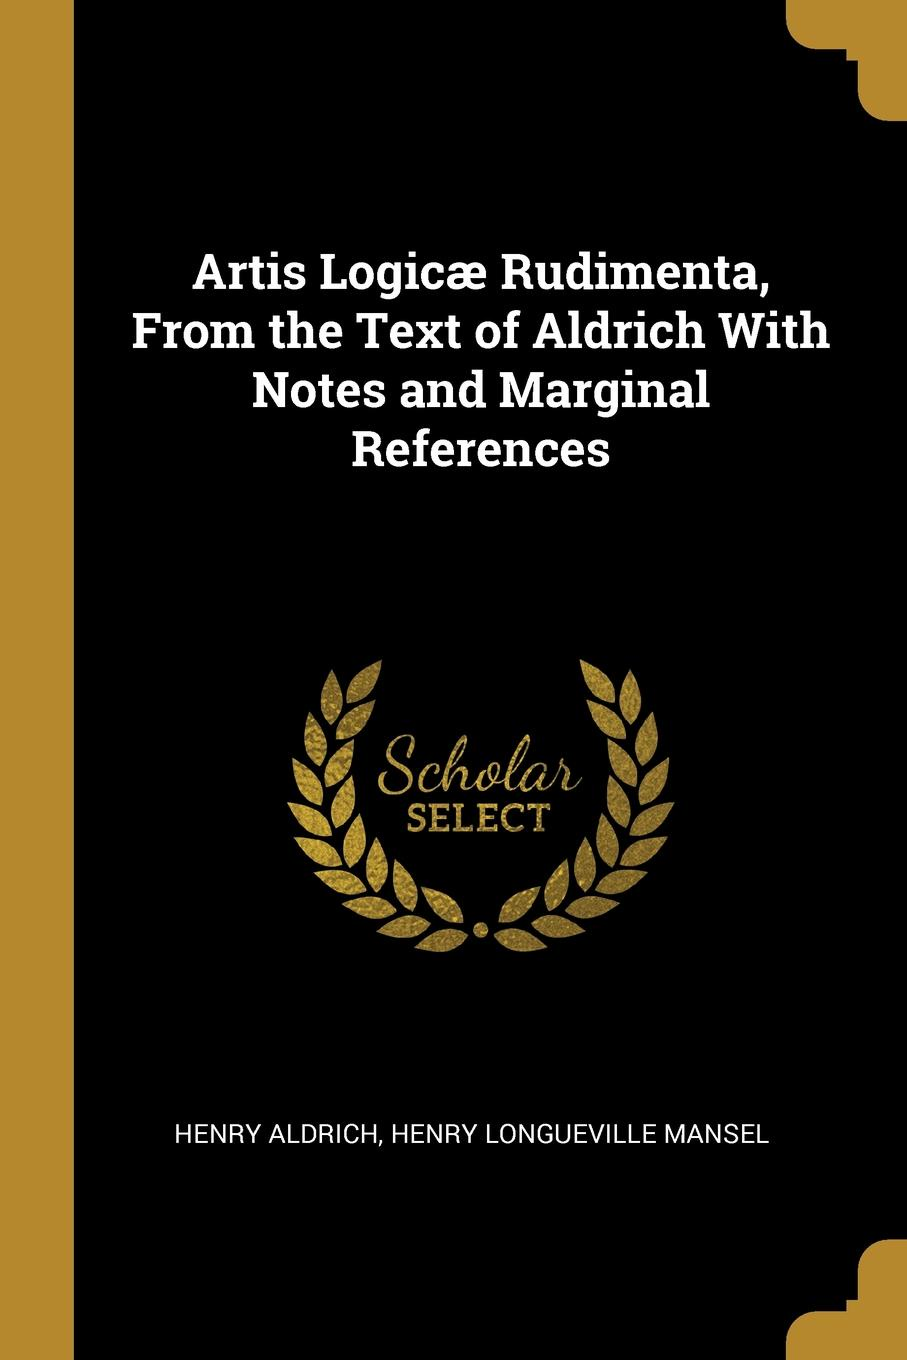 Henry Longueville Mansel Henry Aldrich Artis Logicae Rudimenta, From the Text of Aldrich With Notes and Marginal References henry aldrich the rudiments of the art of logic literally tr from the text of aldrich with explanatory notes